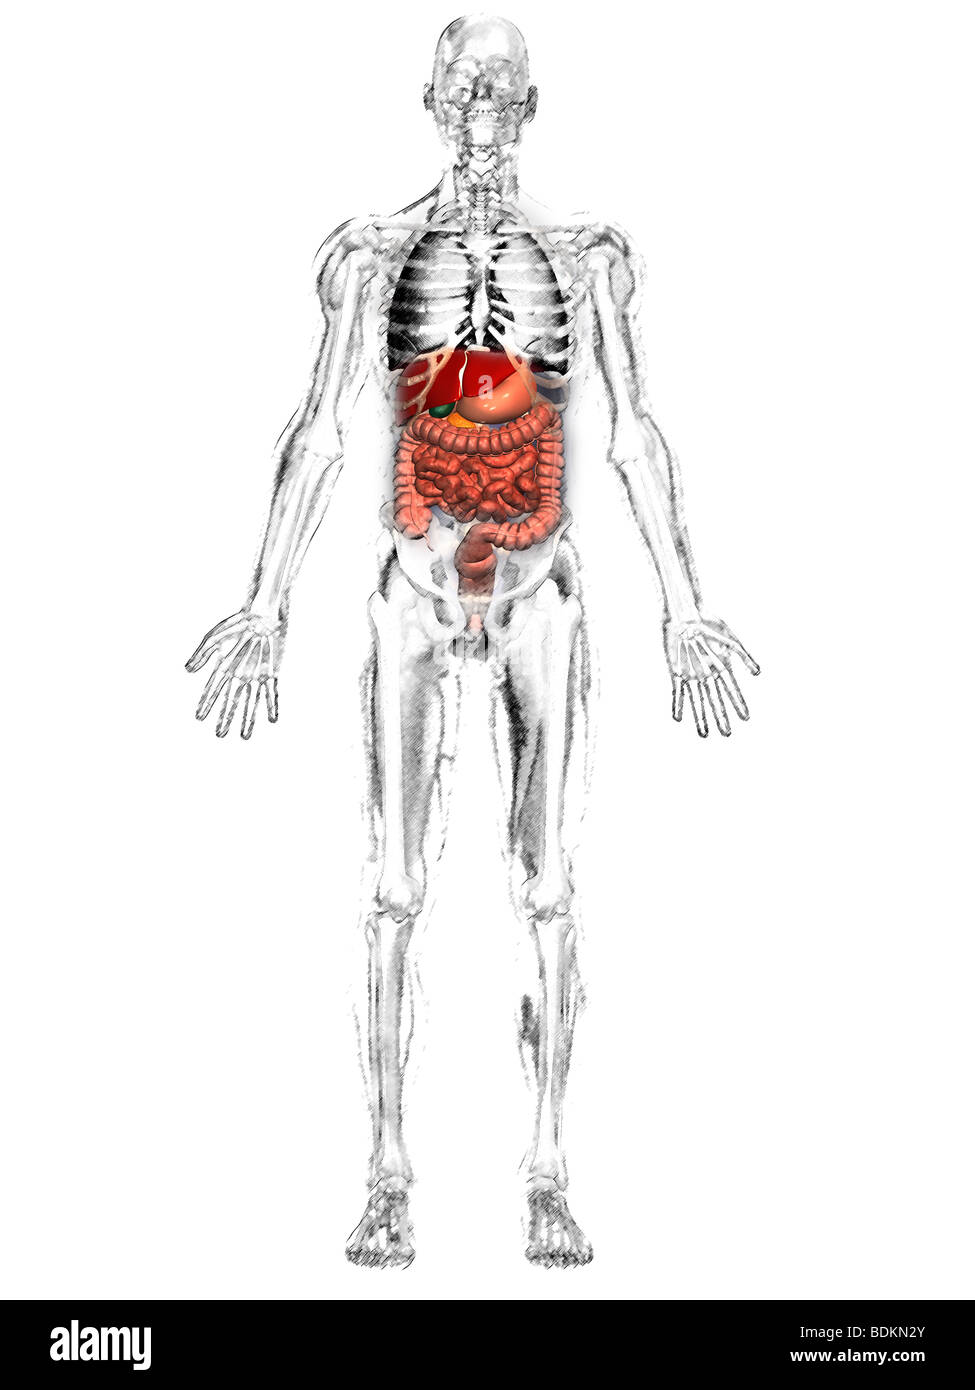 human anatomical illustration of an adult man, showing the skeleton ...